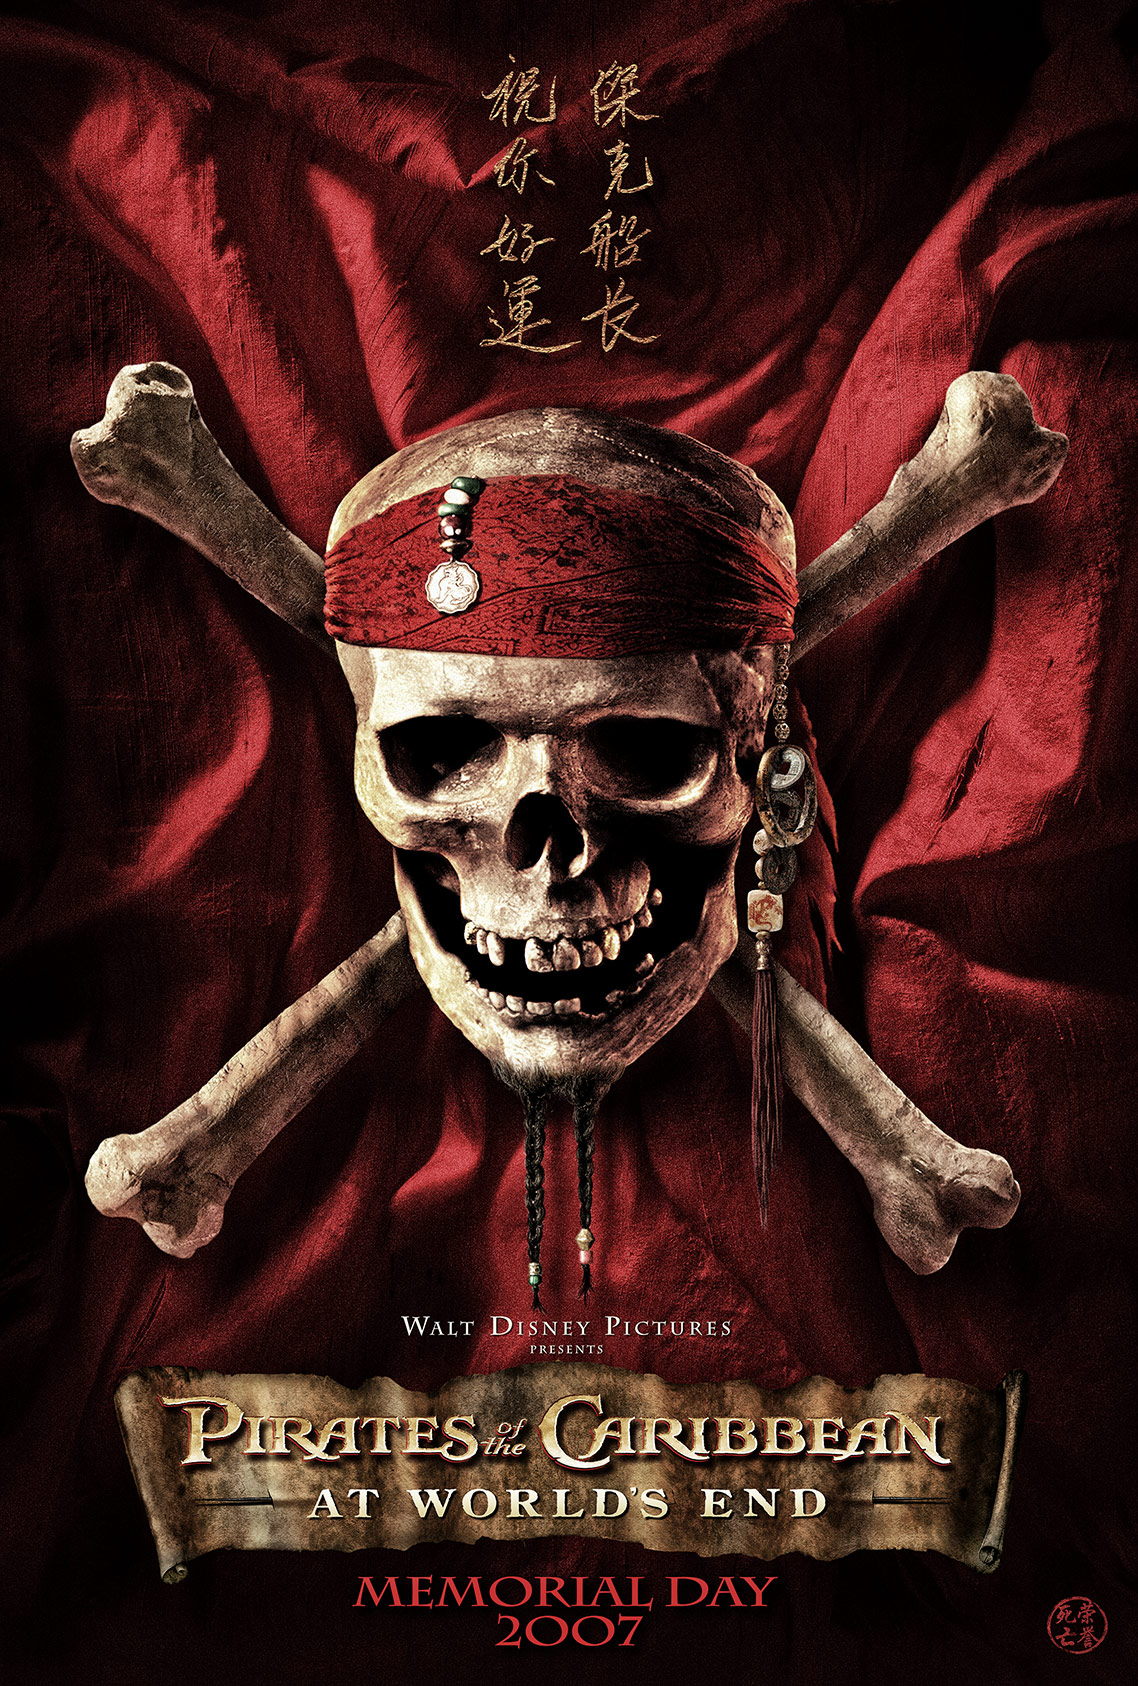 PIRATES OF THE CARIBBEAN • AT WORLD'S END • Poster Art